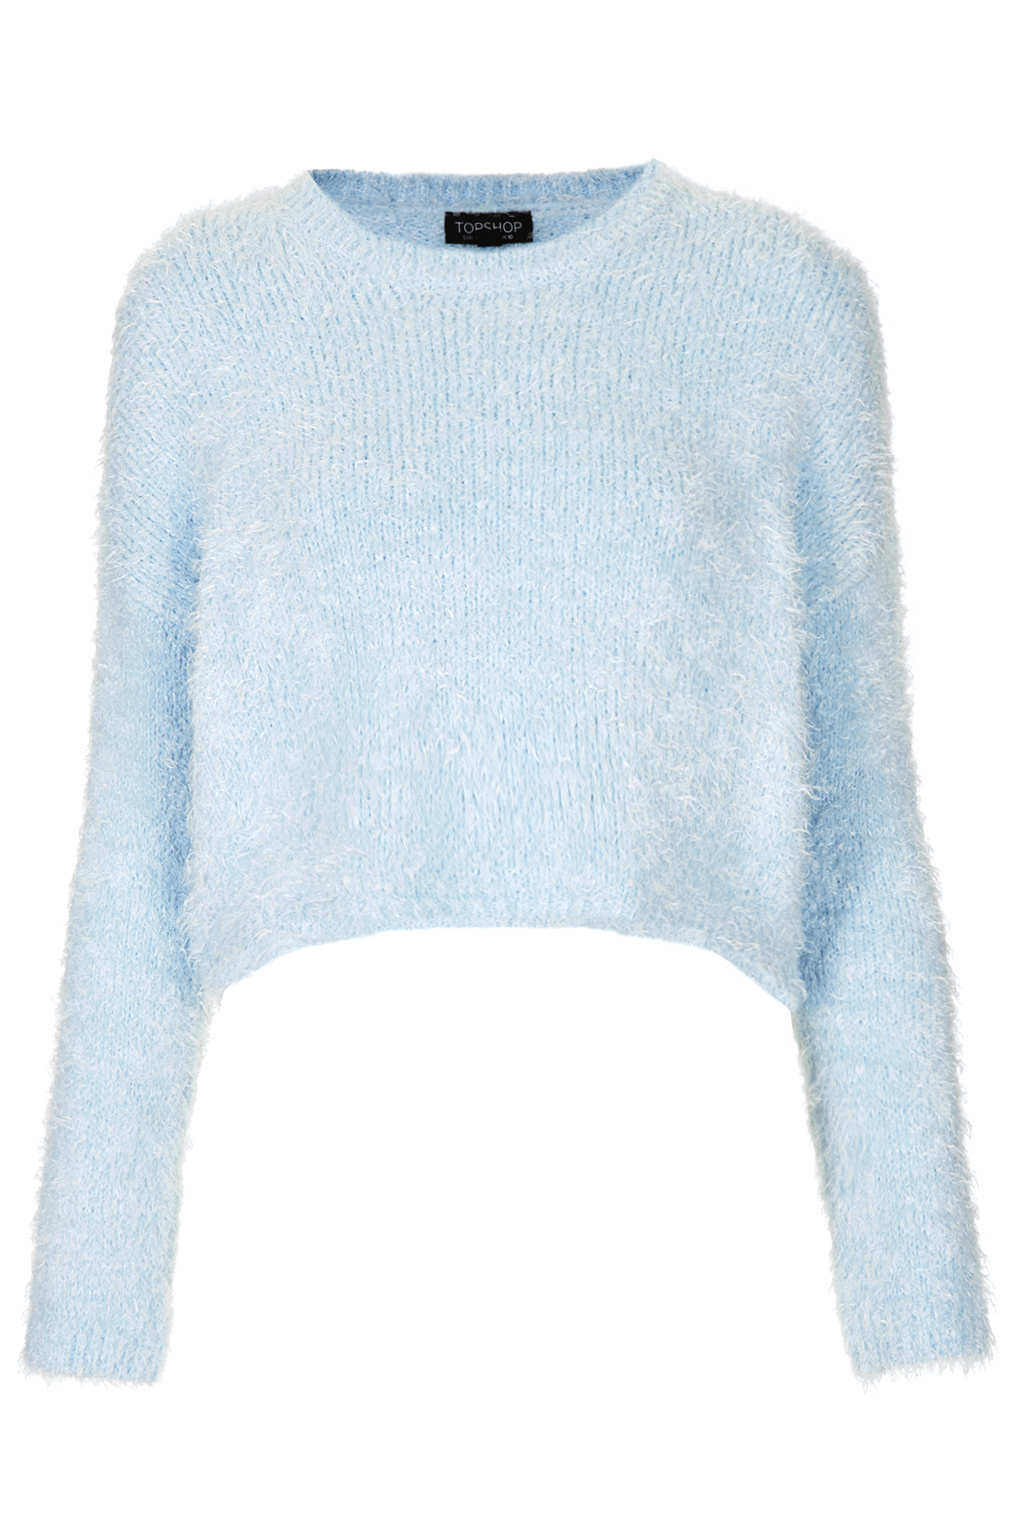 Top Buys: Cropped Sweaters